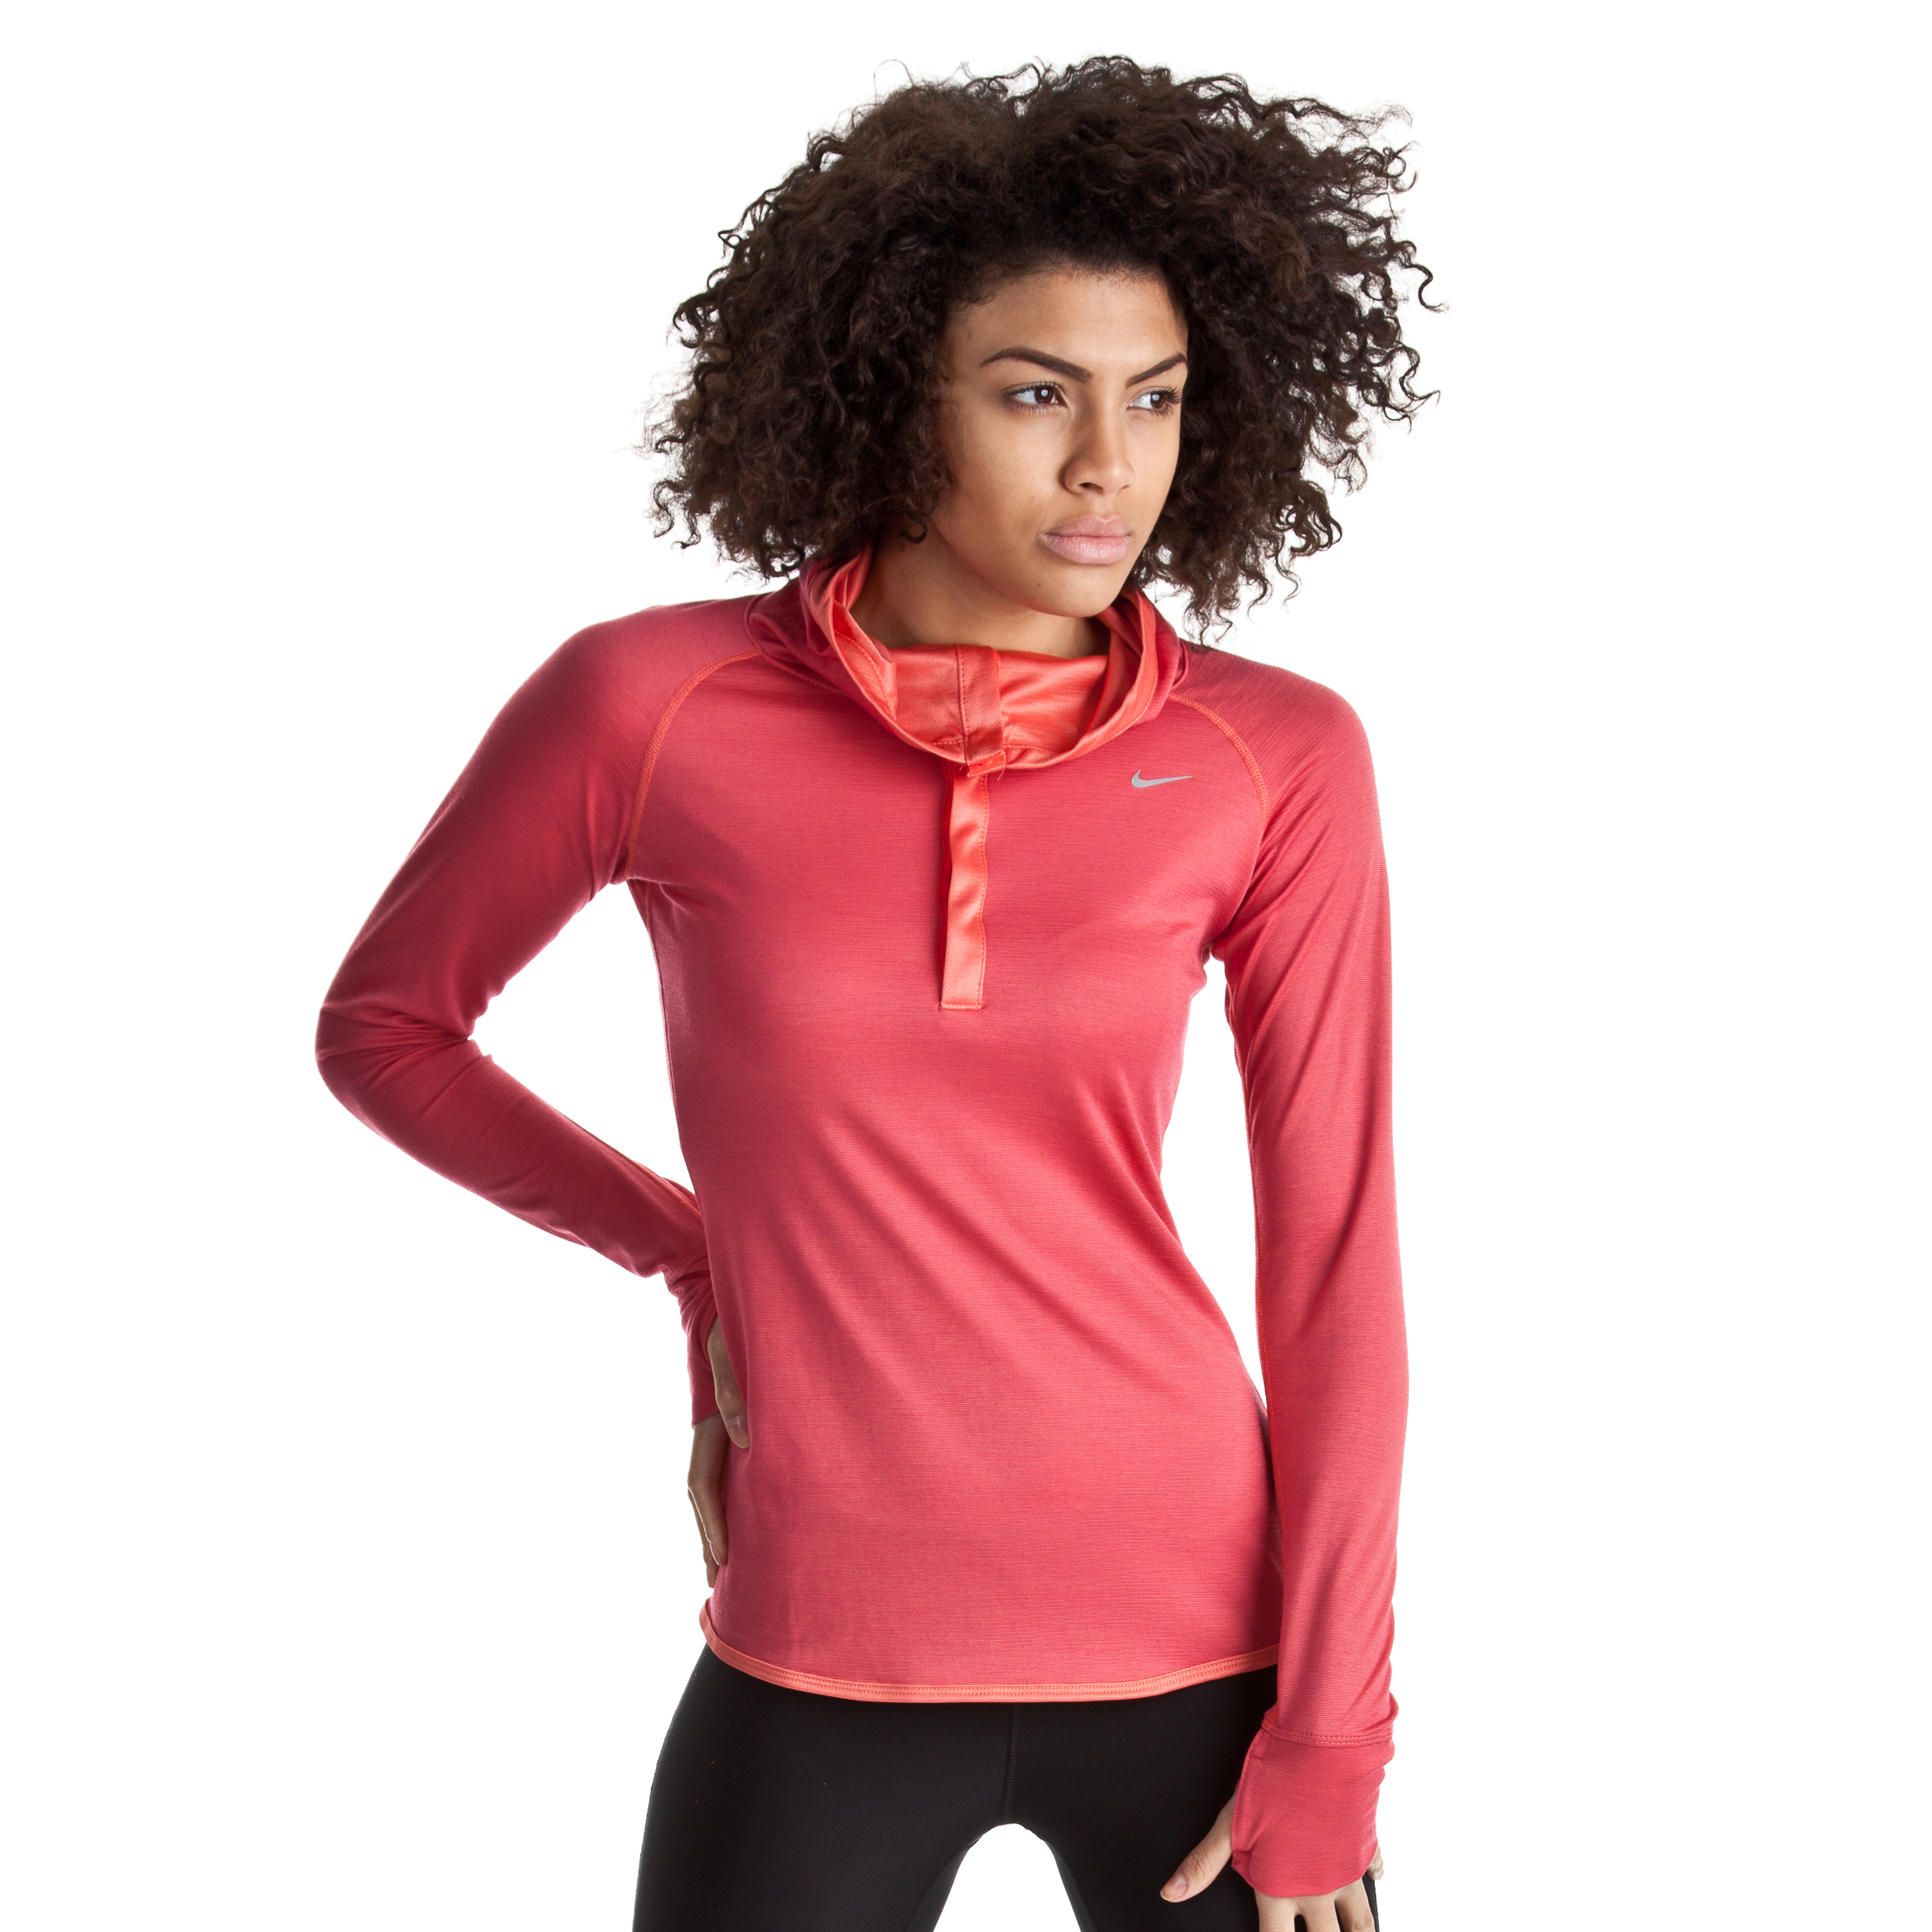 Nike Wool Hoody - Pink Clay/Bright Crimson/Reflective Silv - Womens